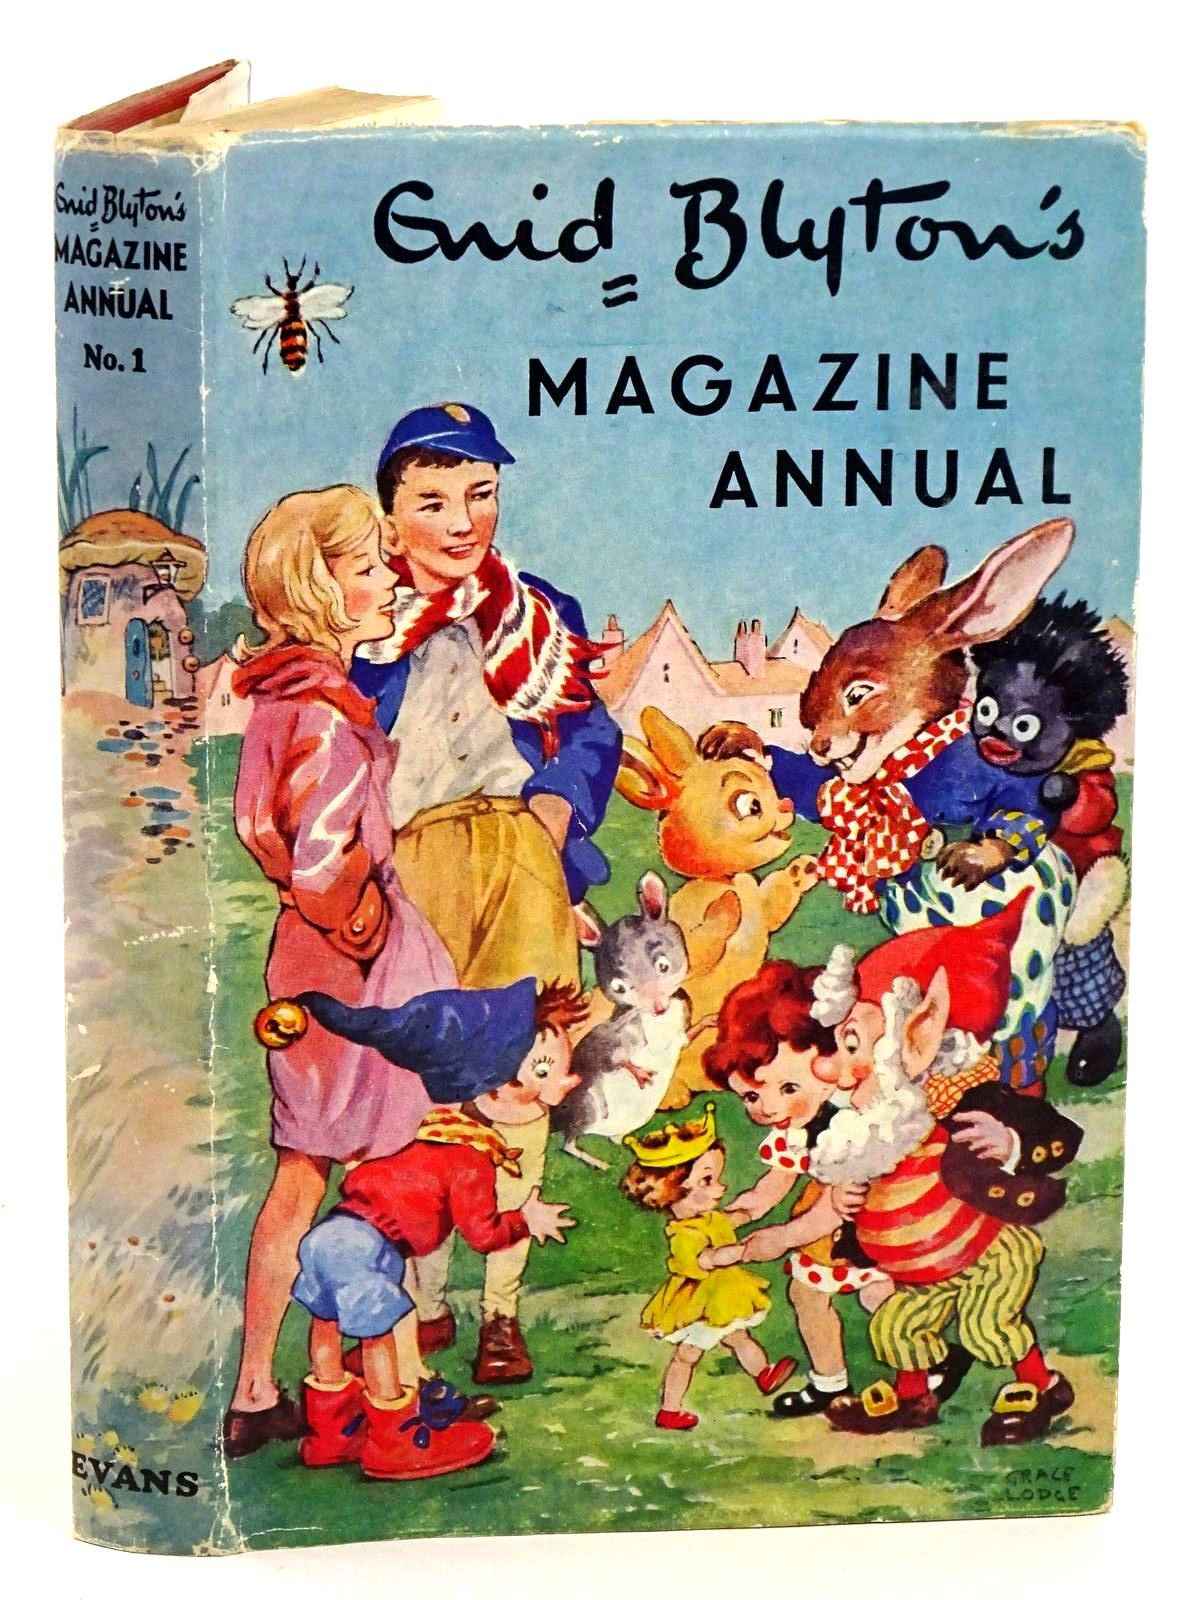 Photo of ENID BLYTON'S MAGAZINE ANNUAL No. 1 written by Blyton, Enid published by Evans Brothers Limited (STOCK CODE: 1318239)  for sale by Stella & Rose's Books